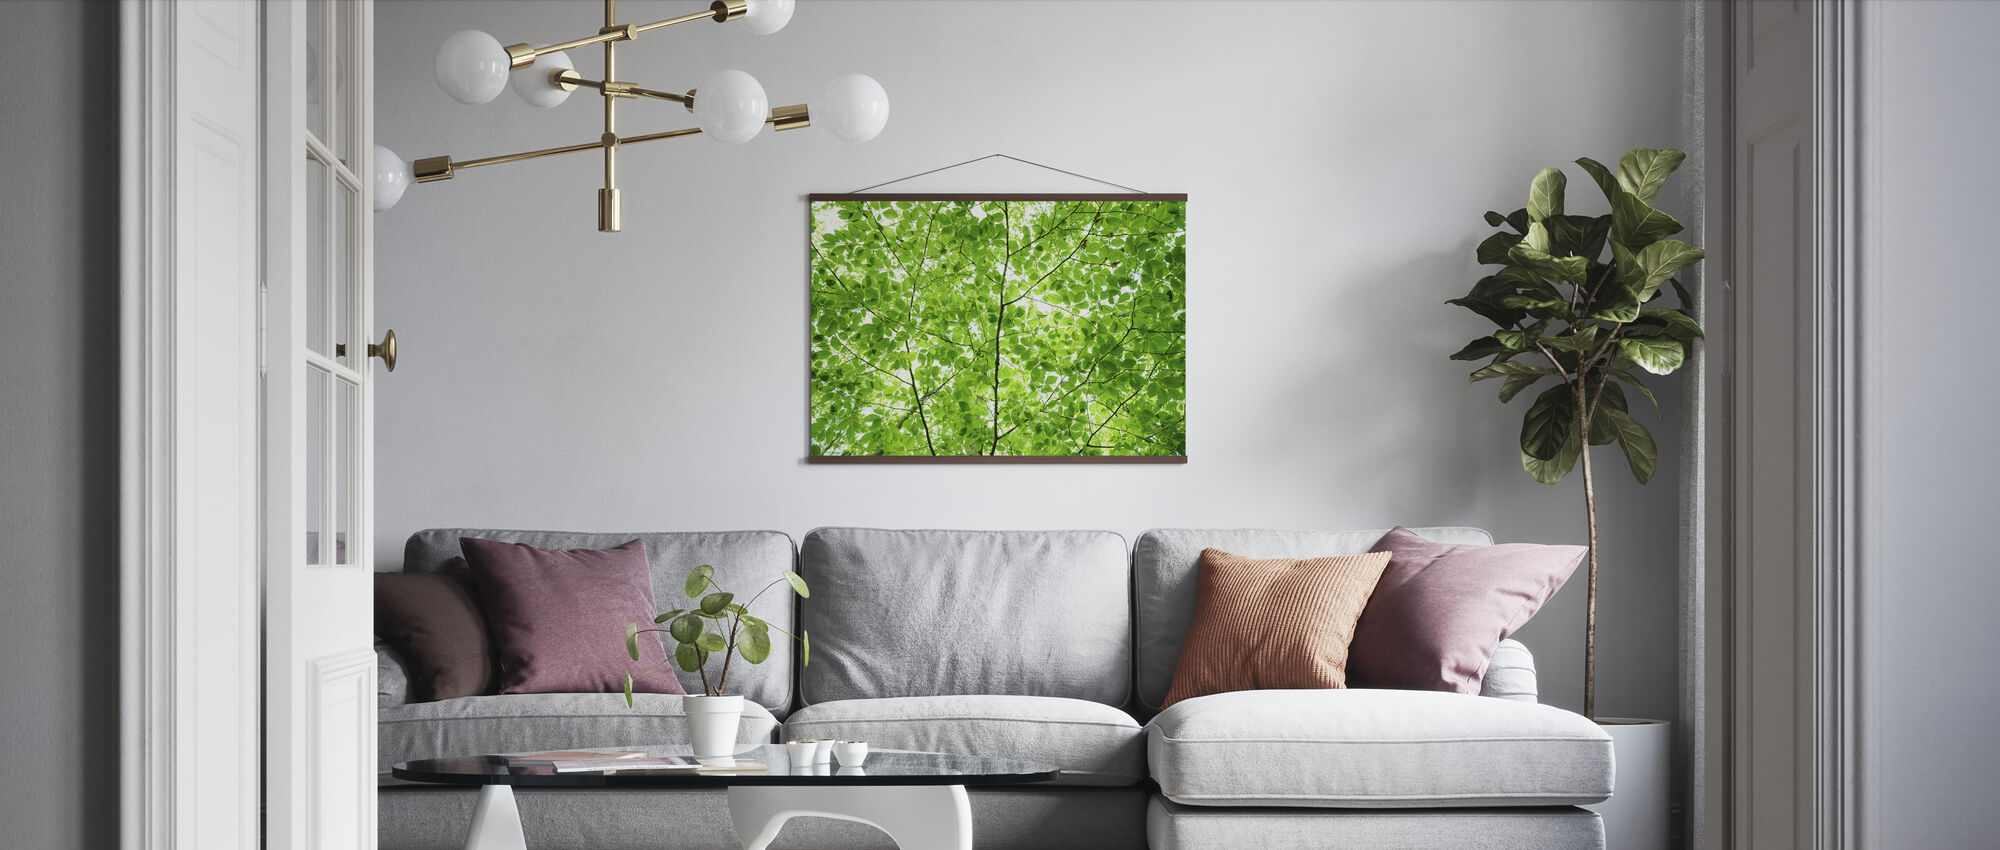 Wall of Fresh Leaves - Poster - Living Room